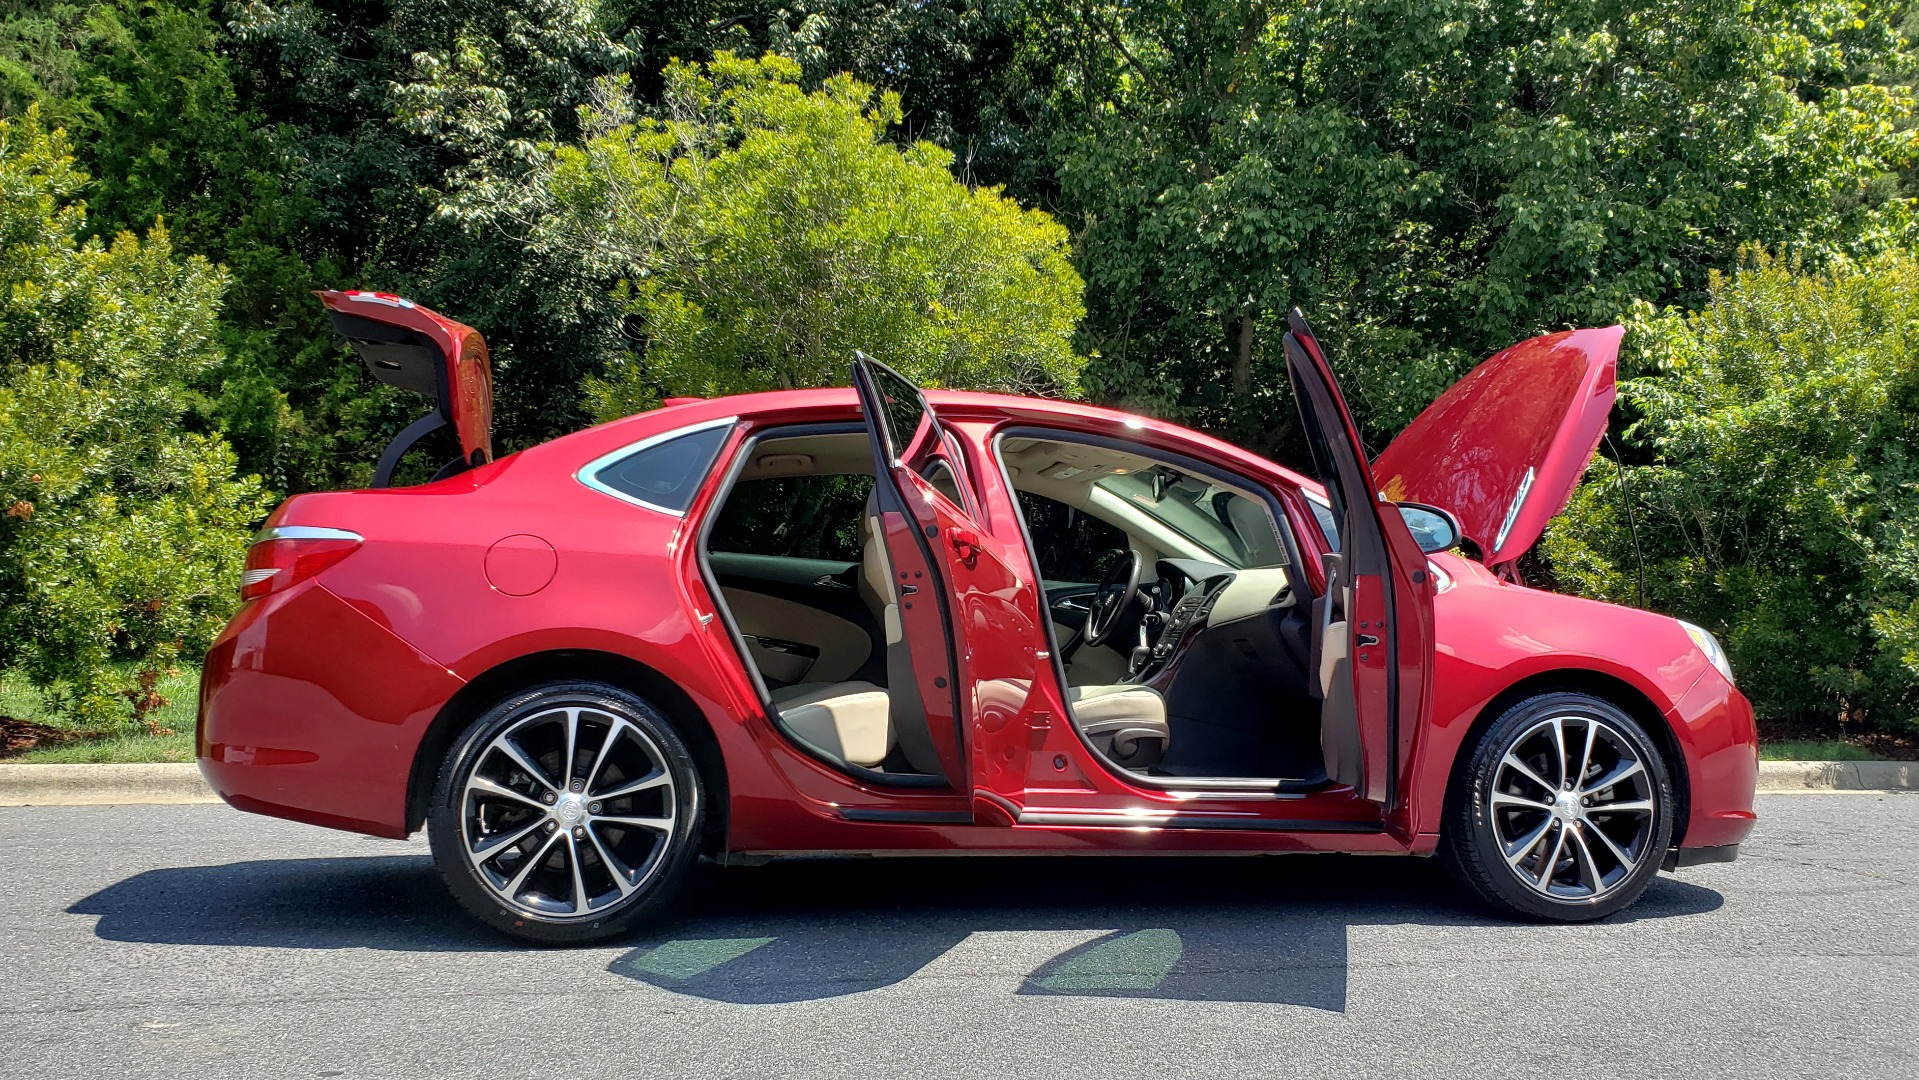 Used 2016 Buick VERANO SPORT TOURING / SUNROOF / HTD STS / 18IN WHEELS / REARVIEW for sale Sold at Formula Imports in Charlotte NC 28227 11